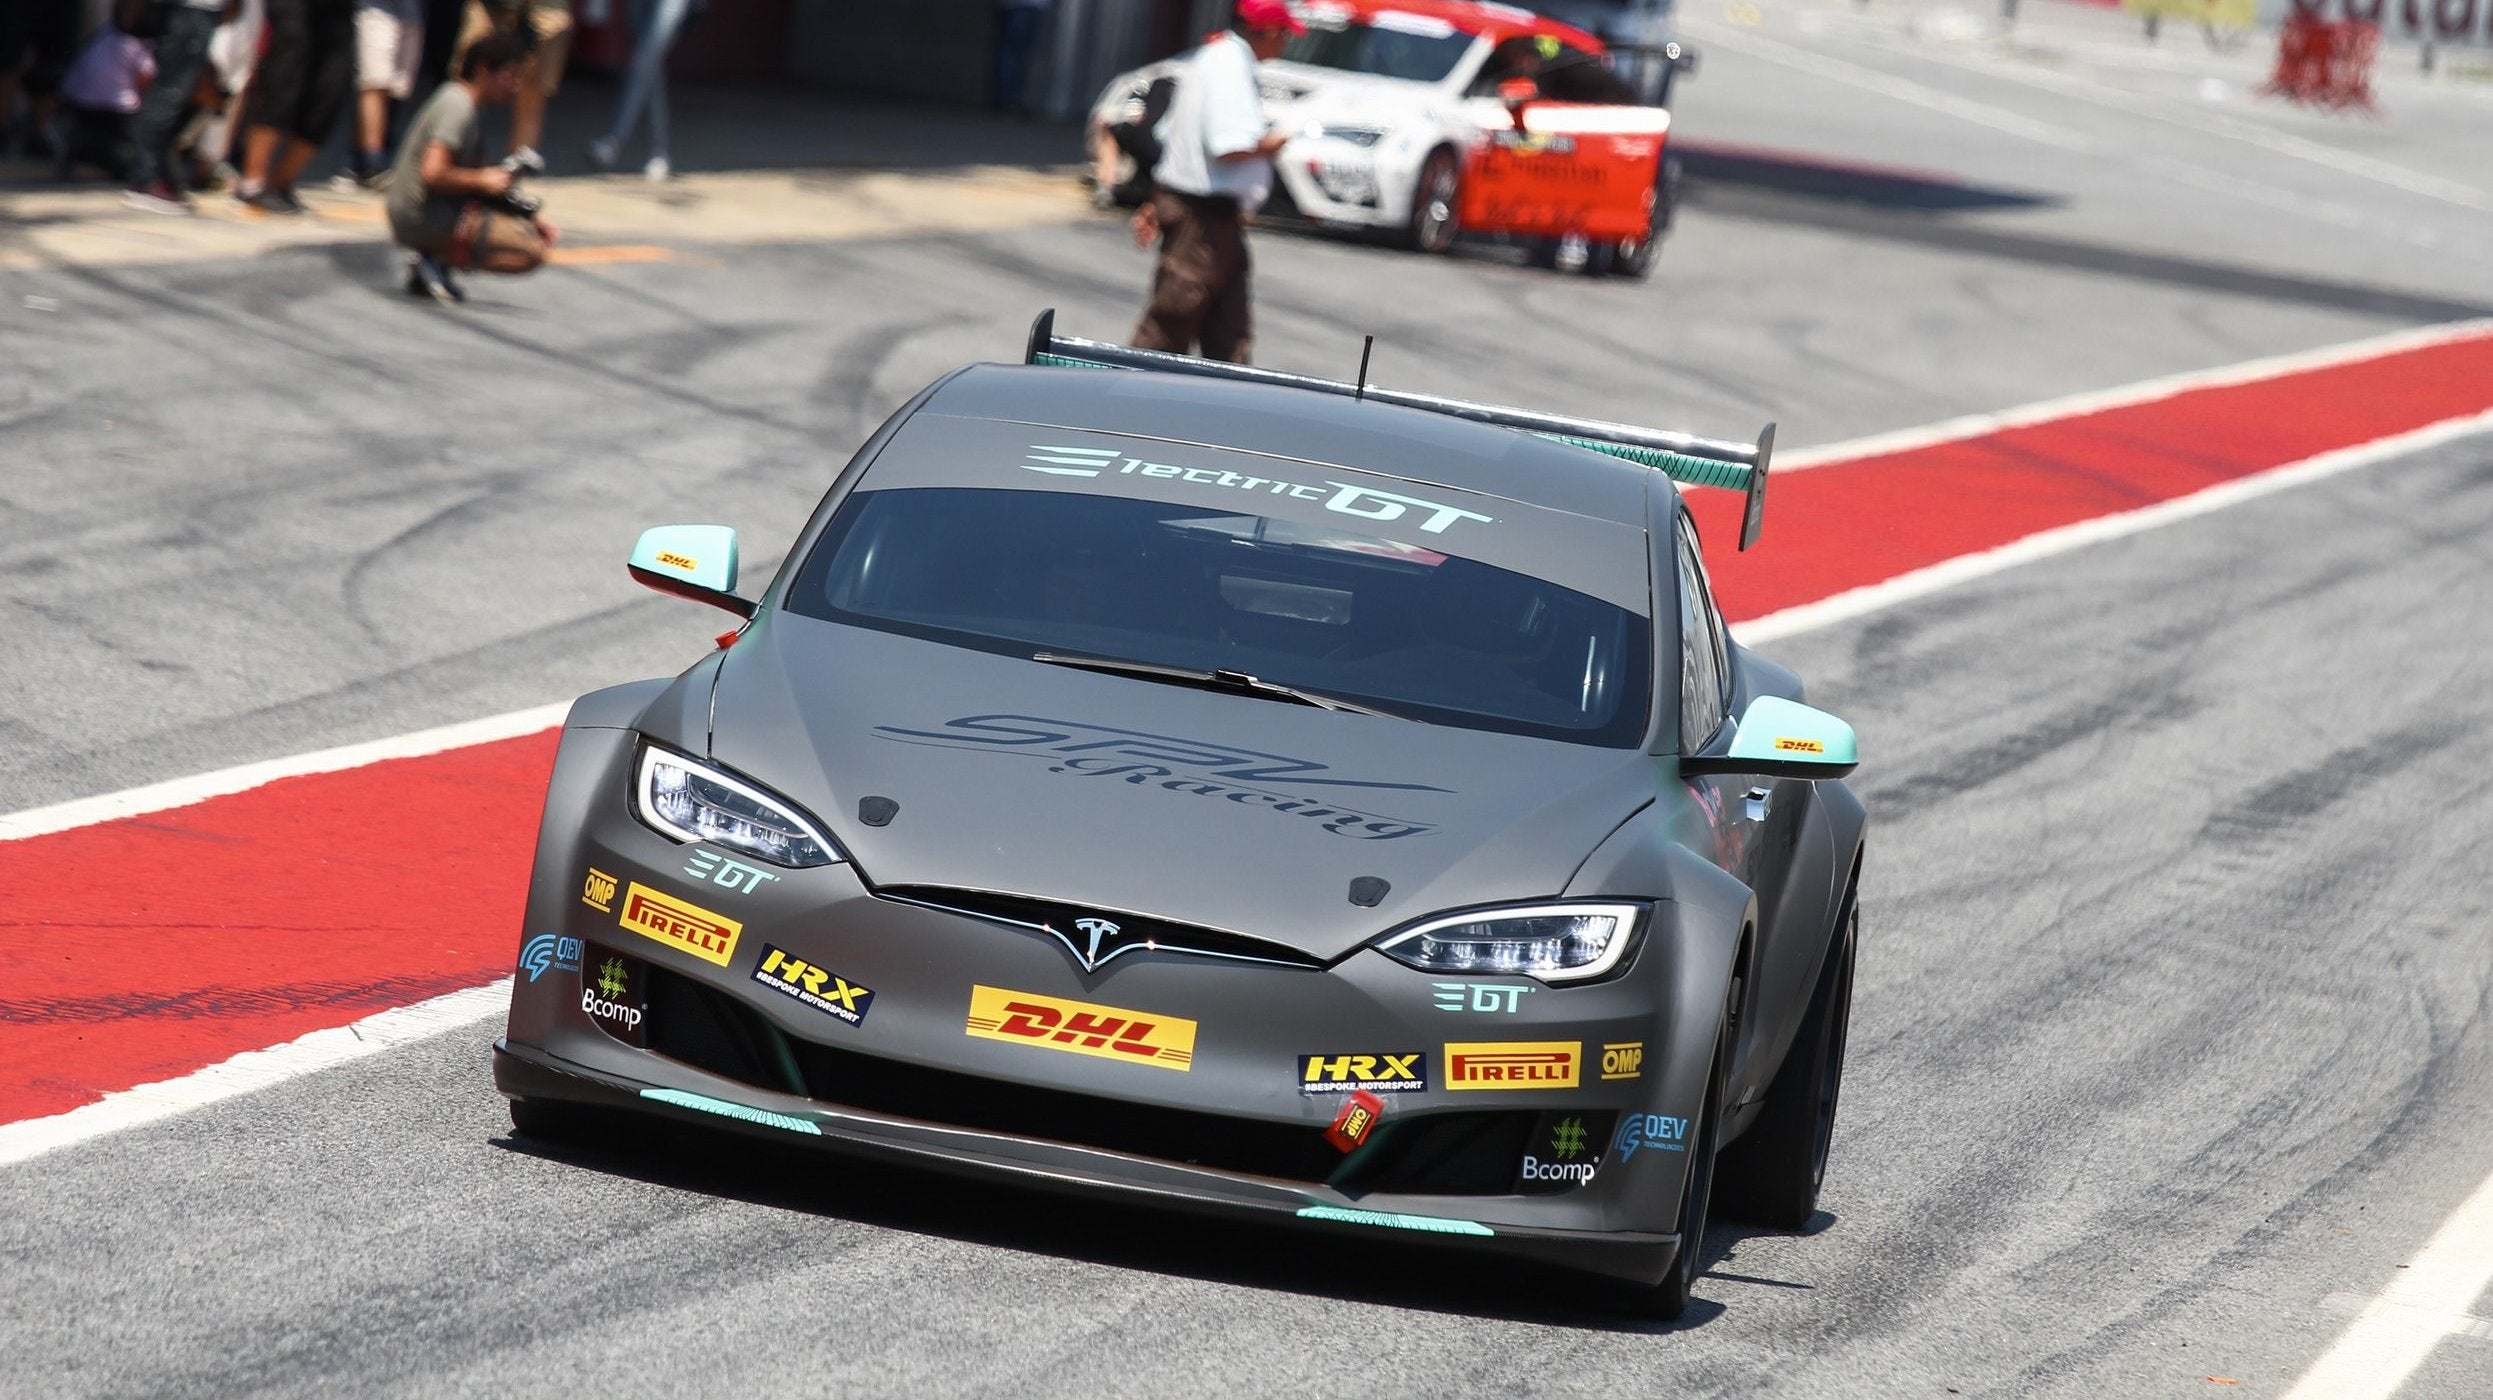 Here's What Happened With The Tesla Model S Race Car That Got Too Hot After Five Miles On An F1 Track